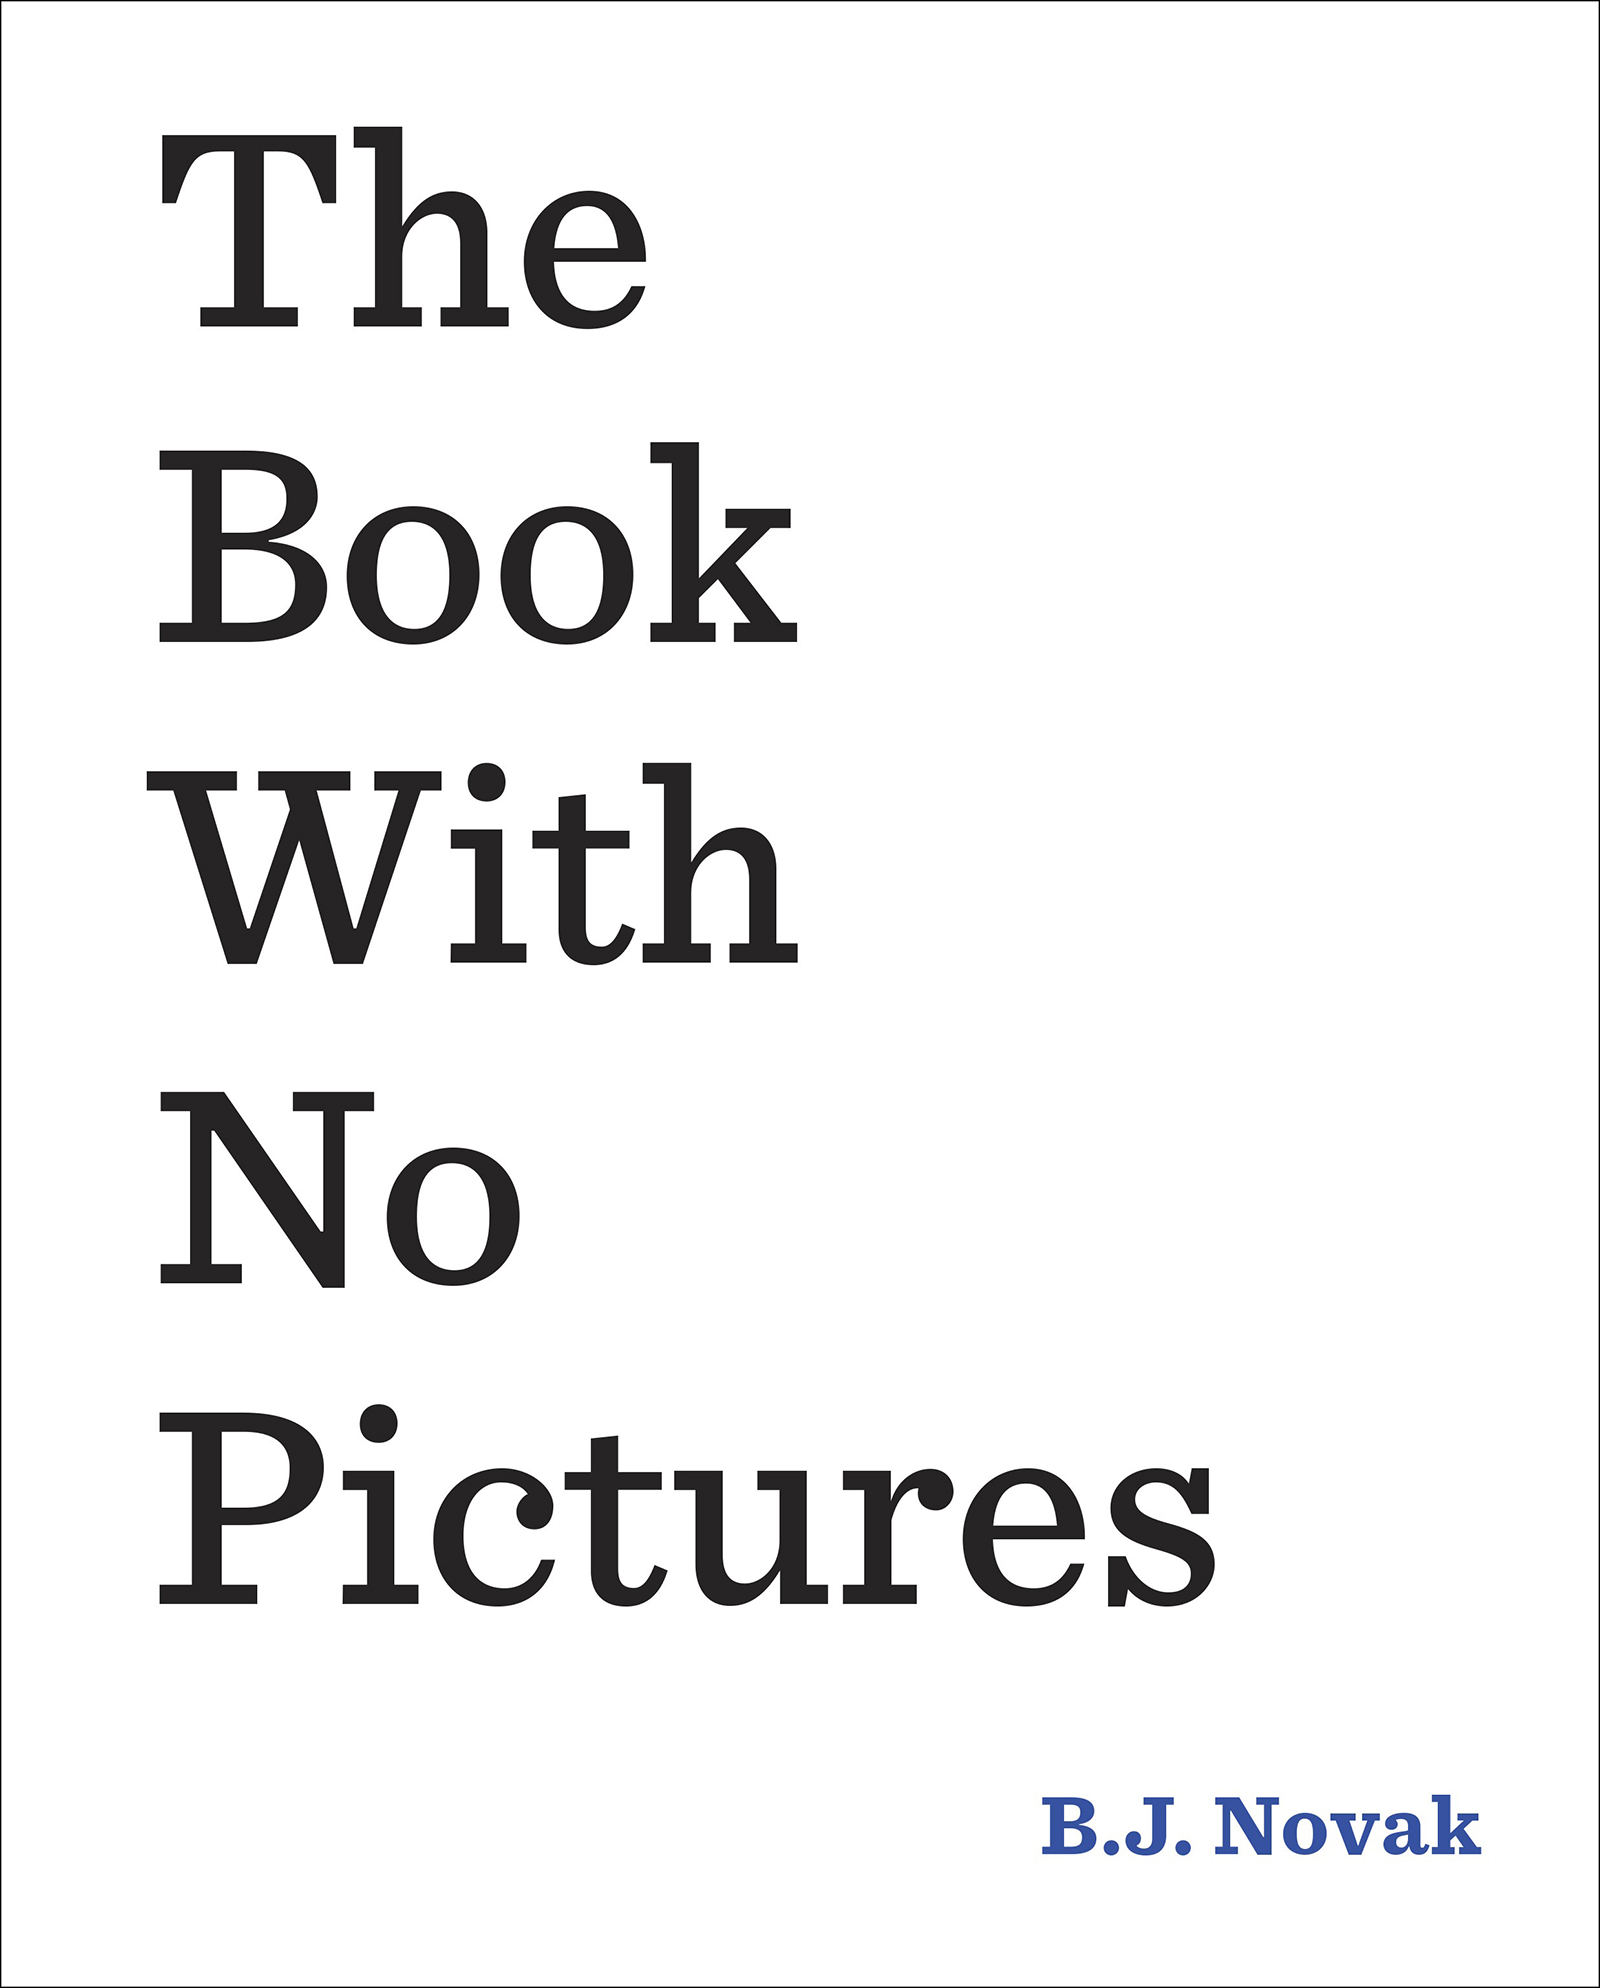 The Book With No Pictures (09/30/14)by B.J. Novak